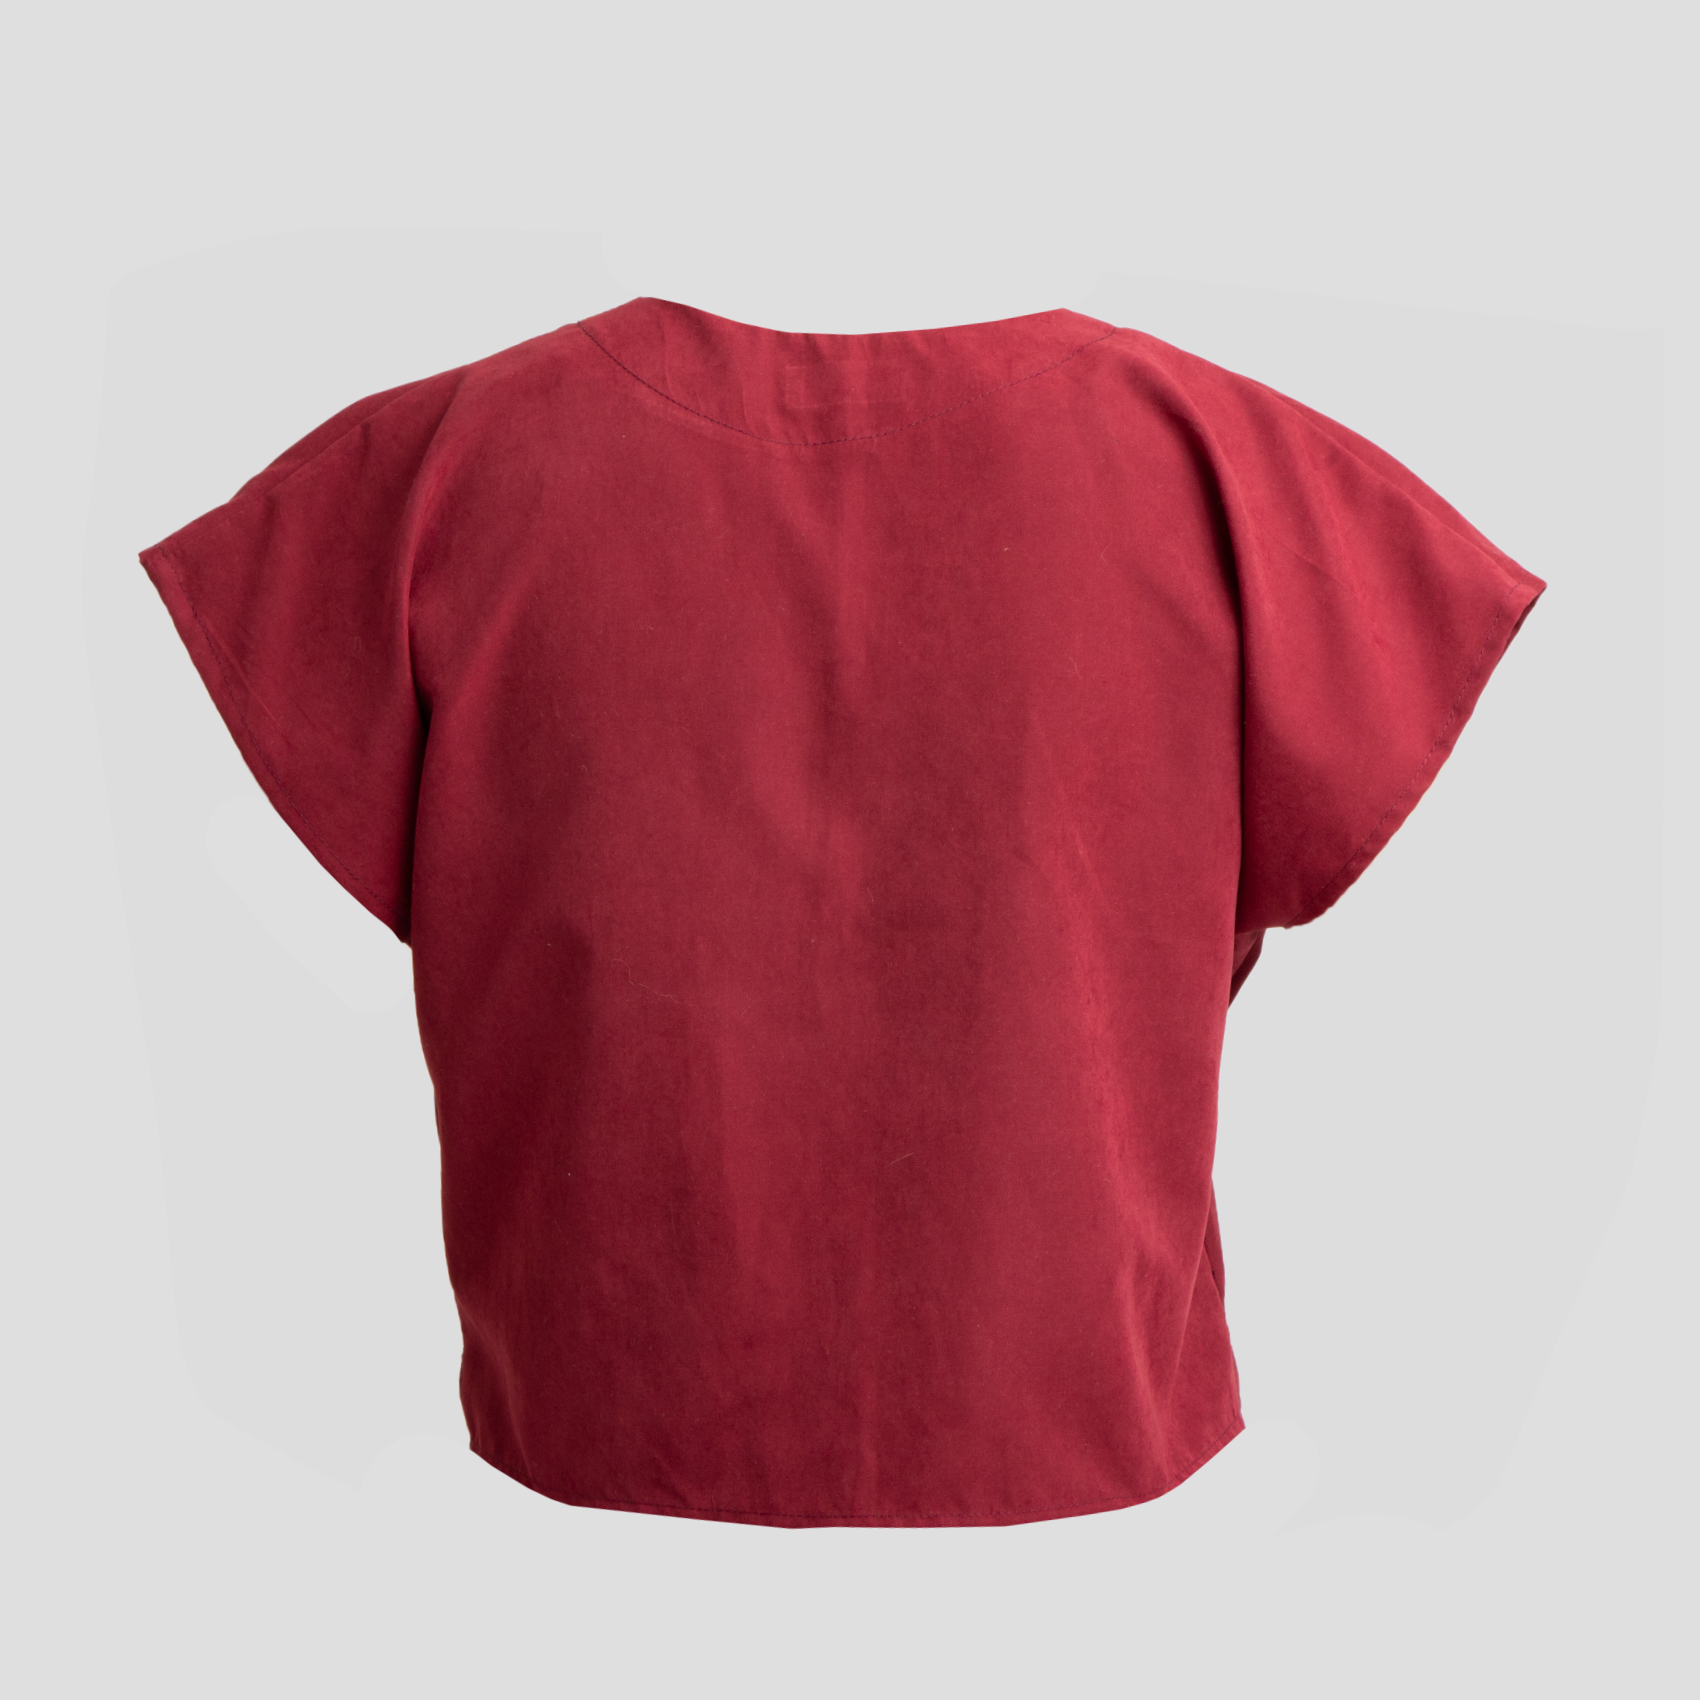 Picture of dark red top with large pockets